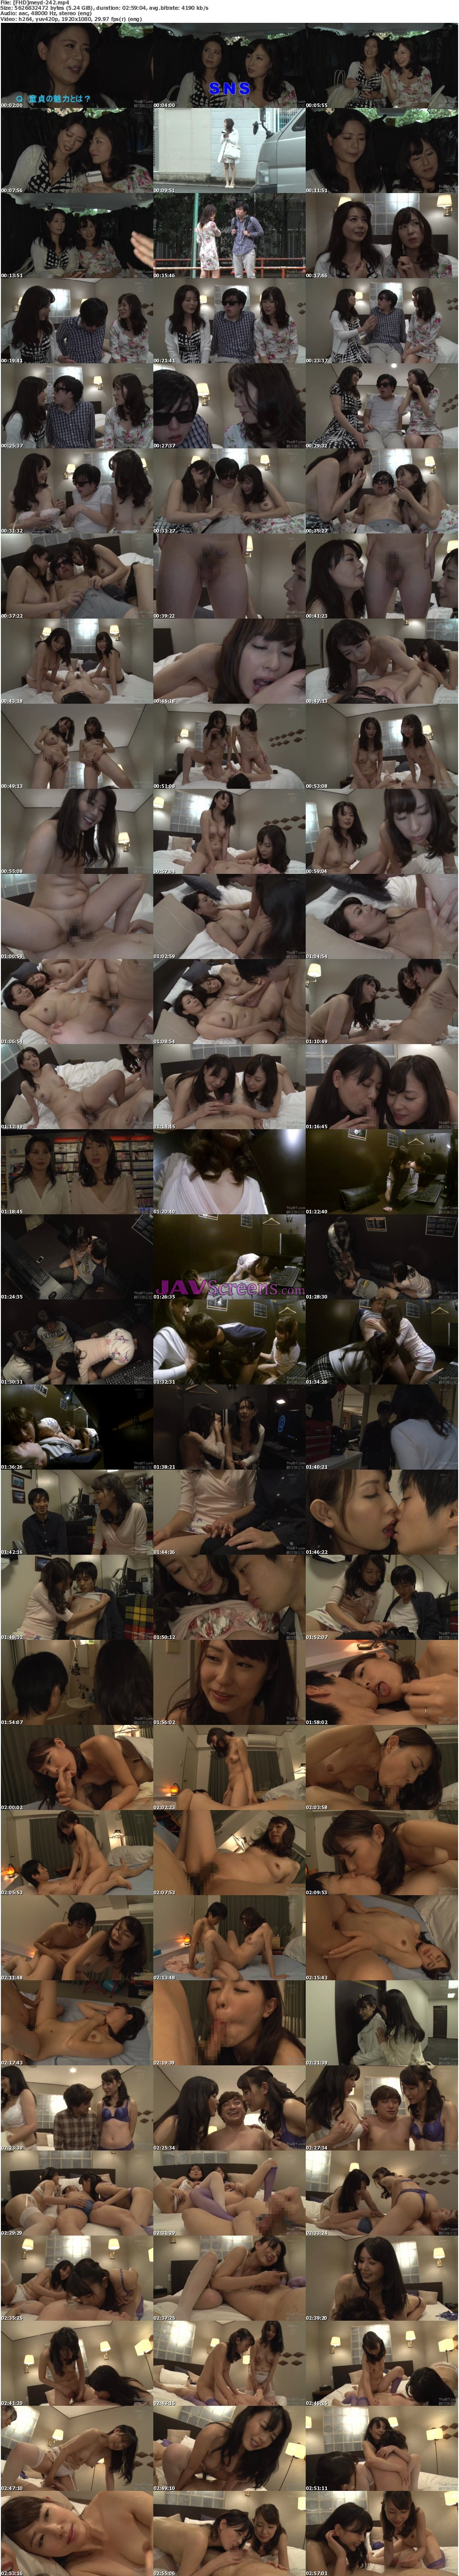 MEYD-242.jpg - JAV Screenshot